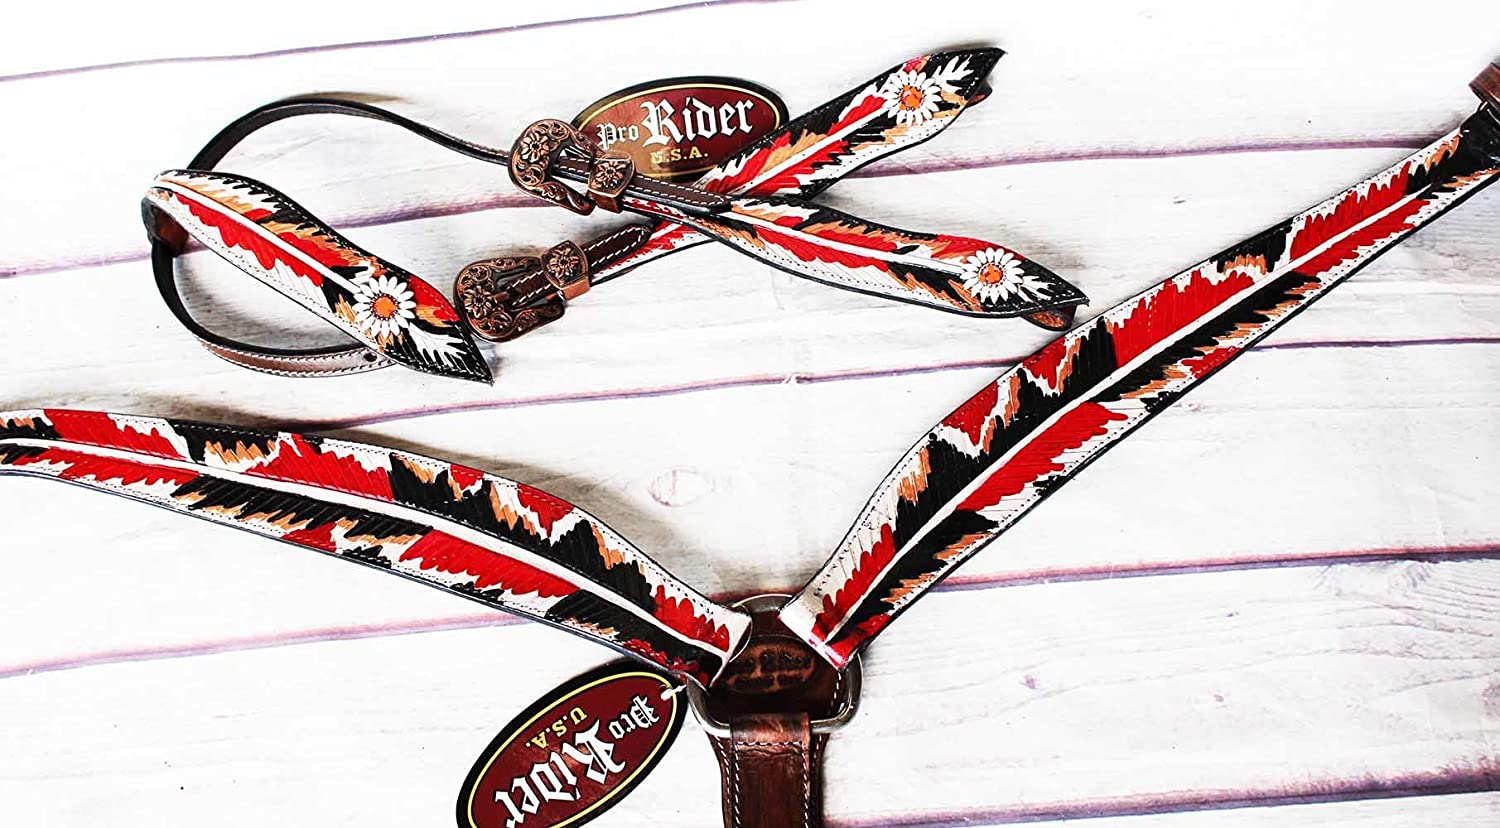 Horse Show Bridle WesternレザーロデオHeadstall Breast襟レッドTack 8846 A   B0722PJY67